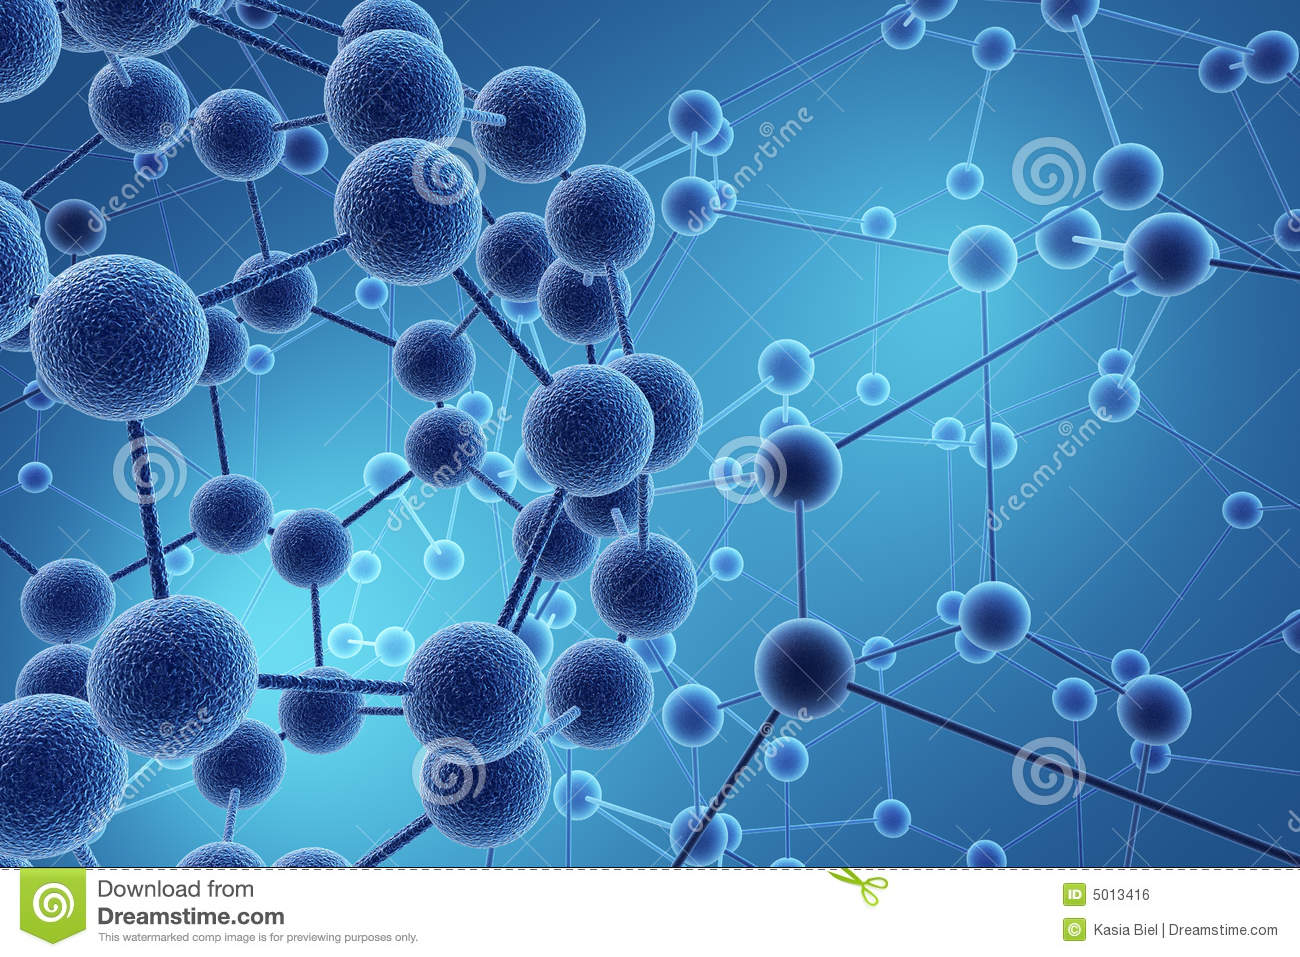 Neural Network Royalty Free Stock Image  Image: 5013416